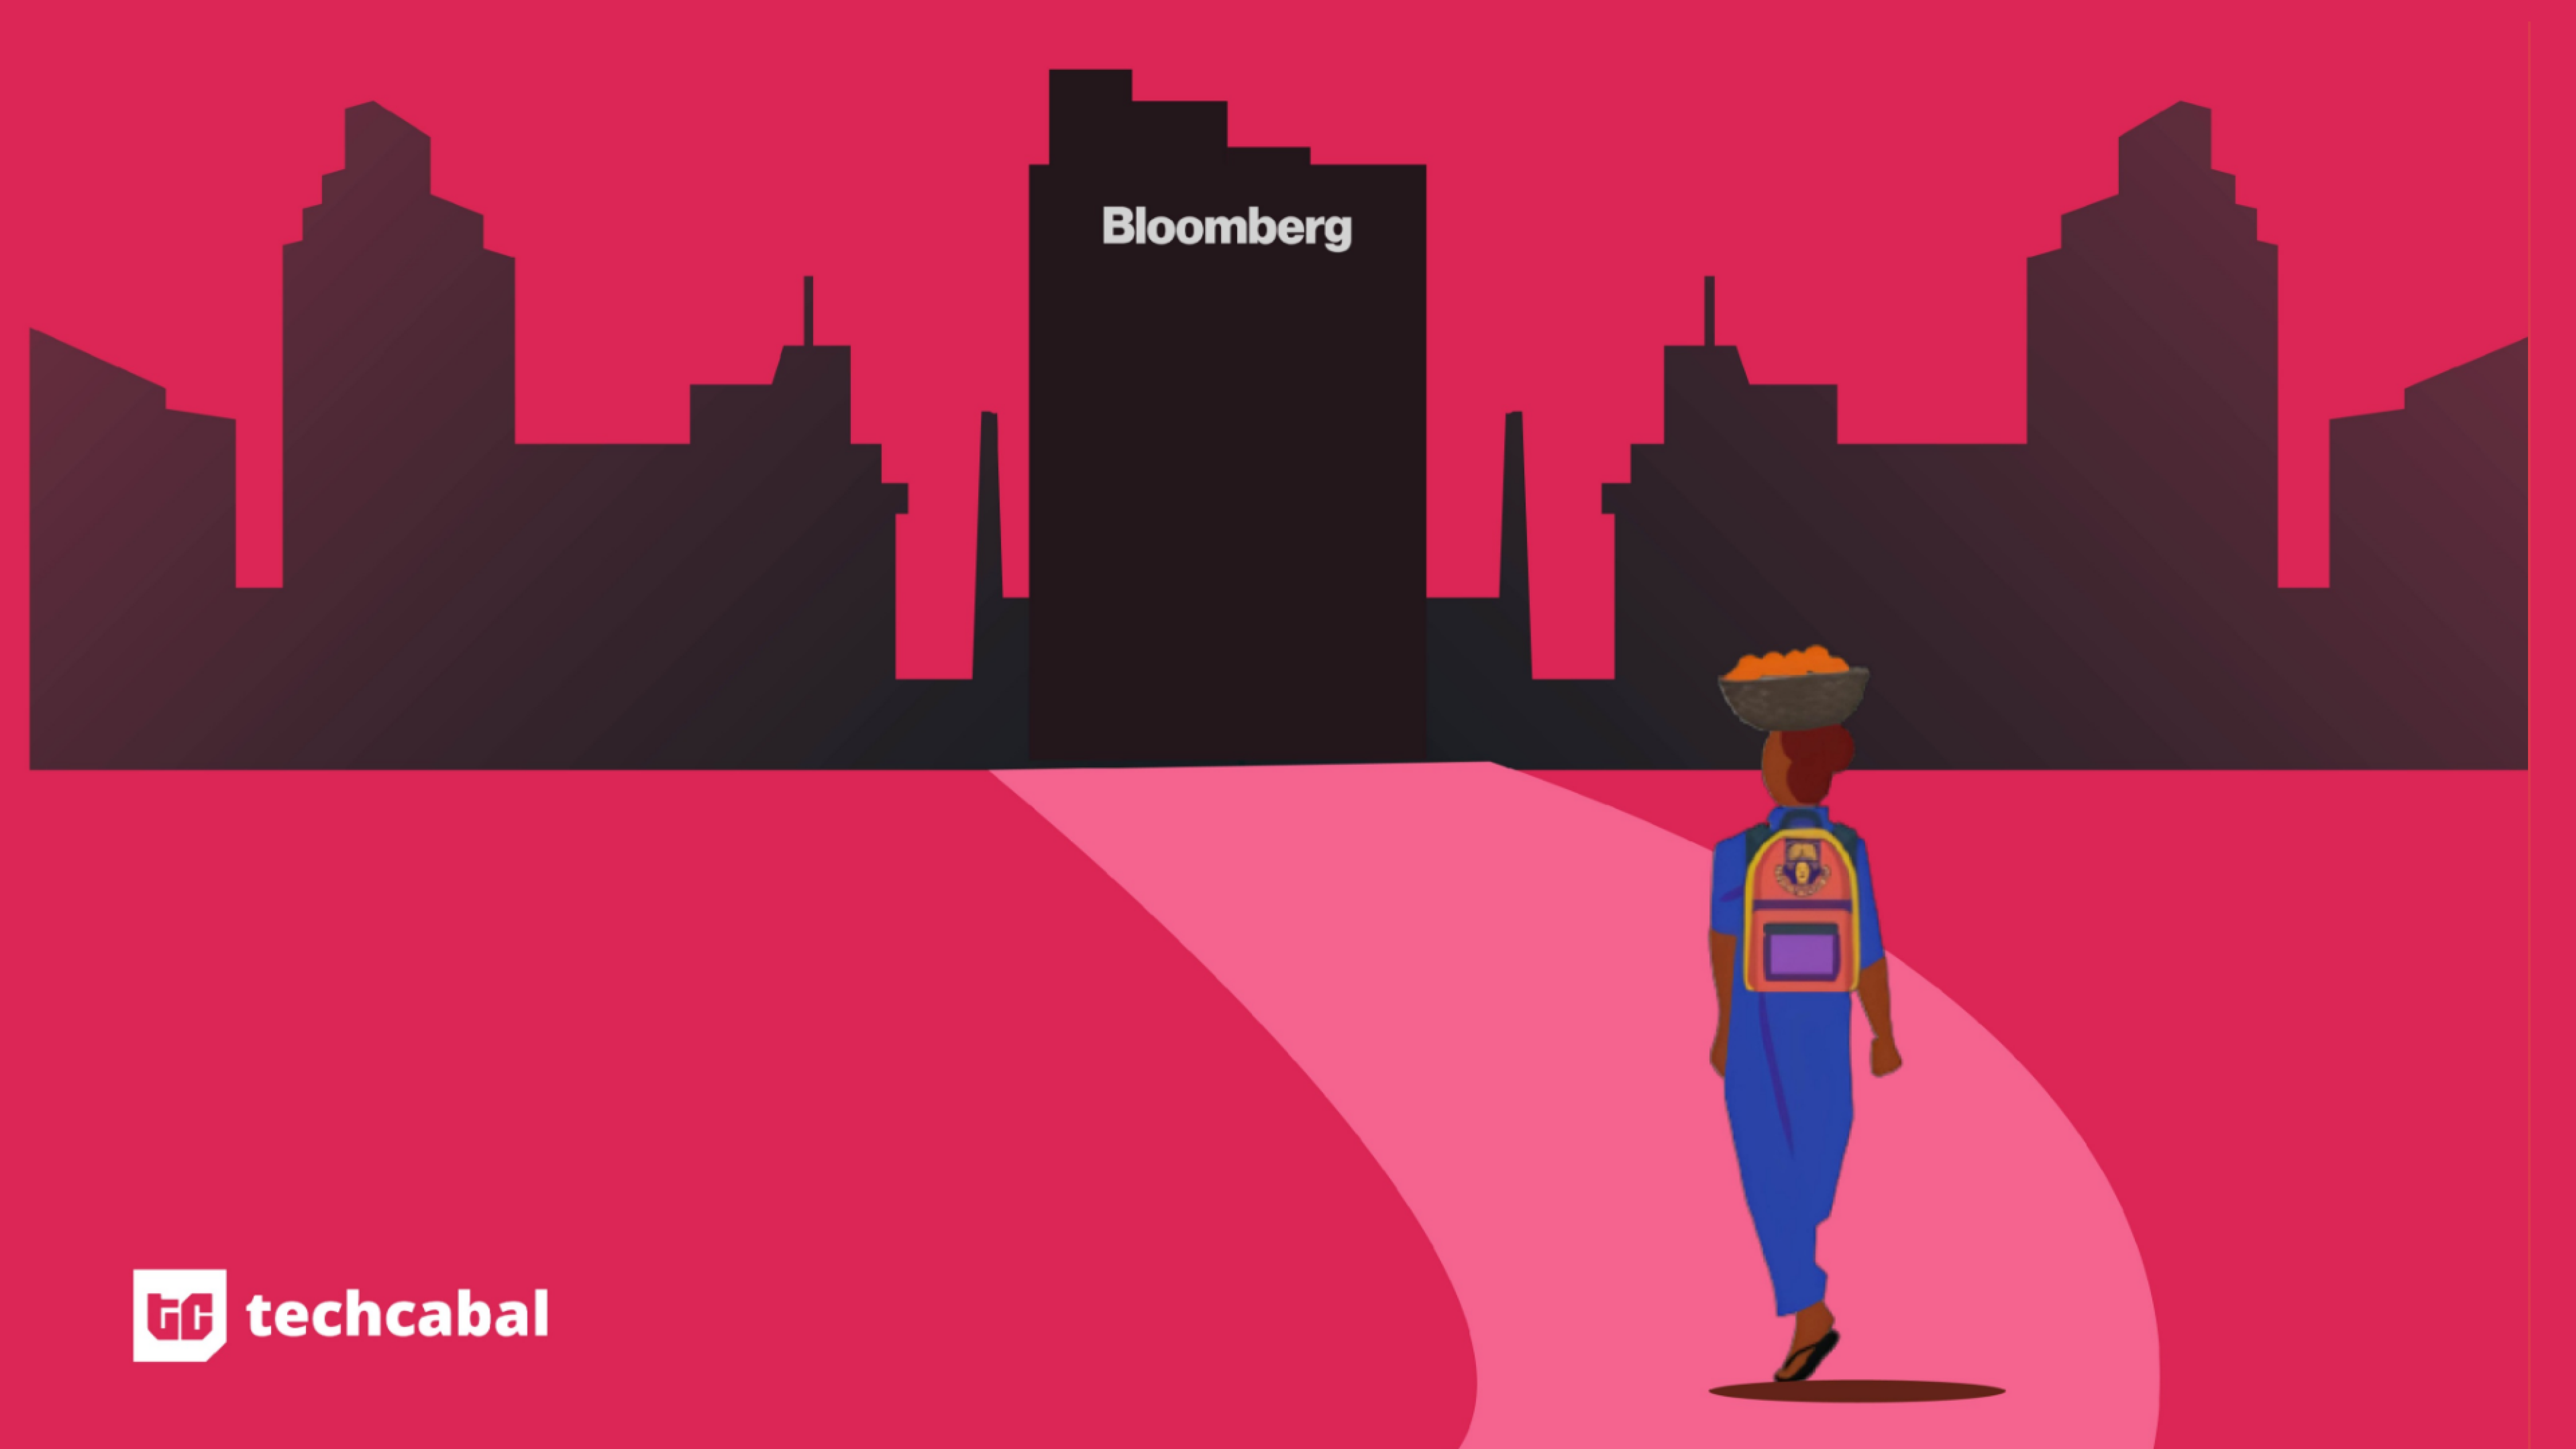 How a Nigerian woman went from selling dried fish to developing software at Bloomberg